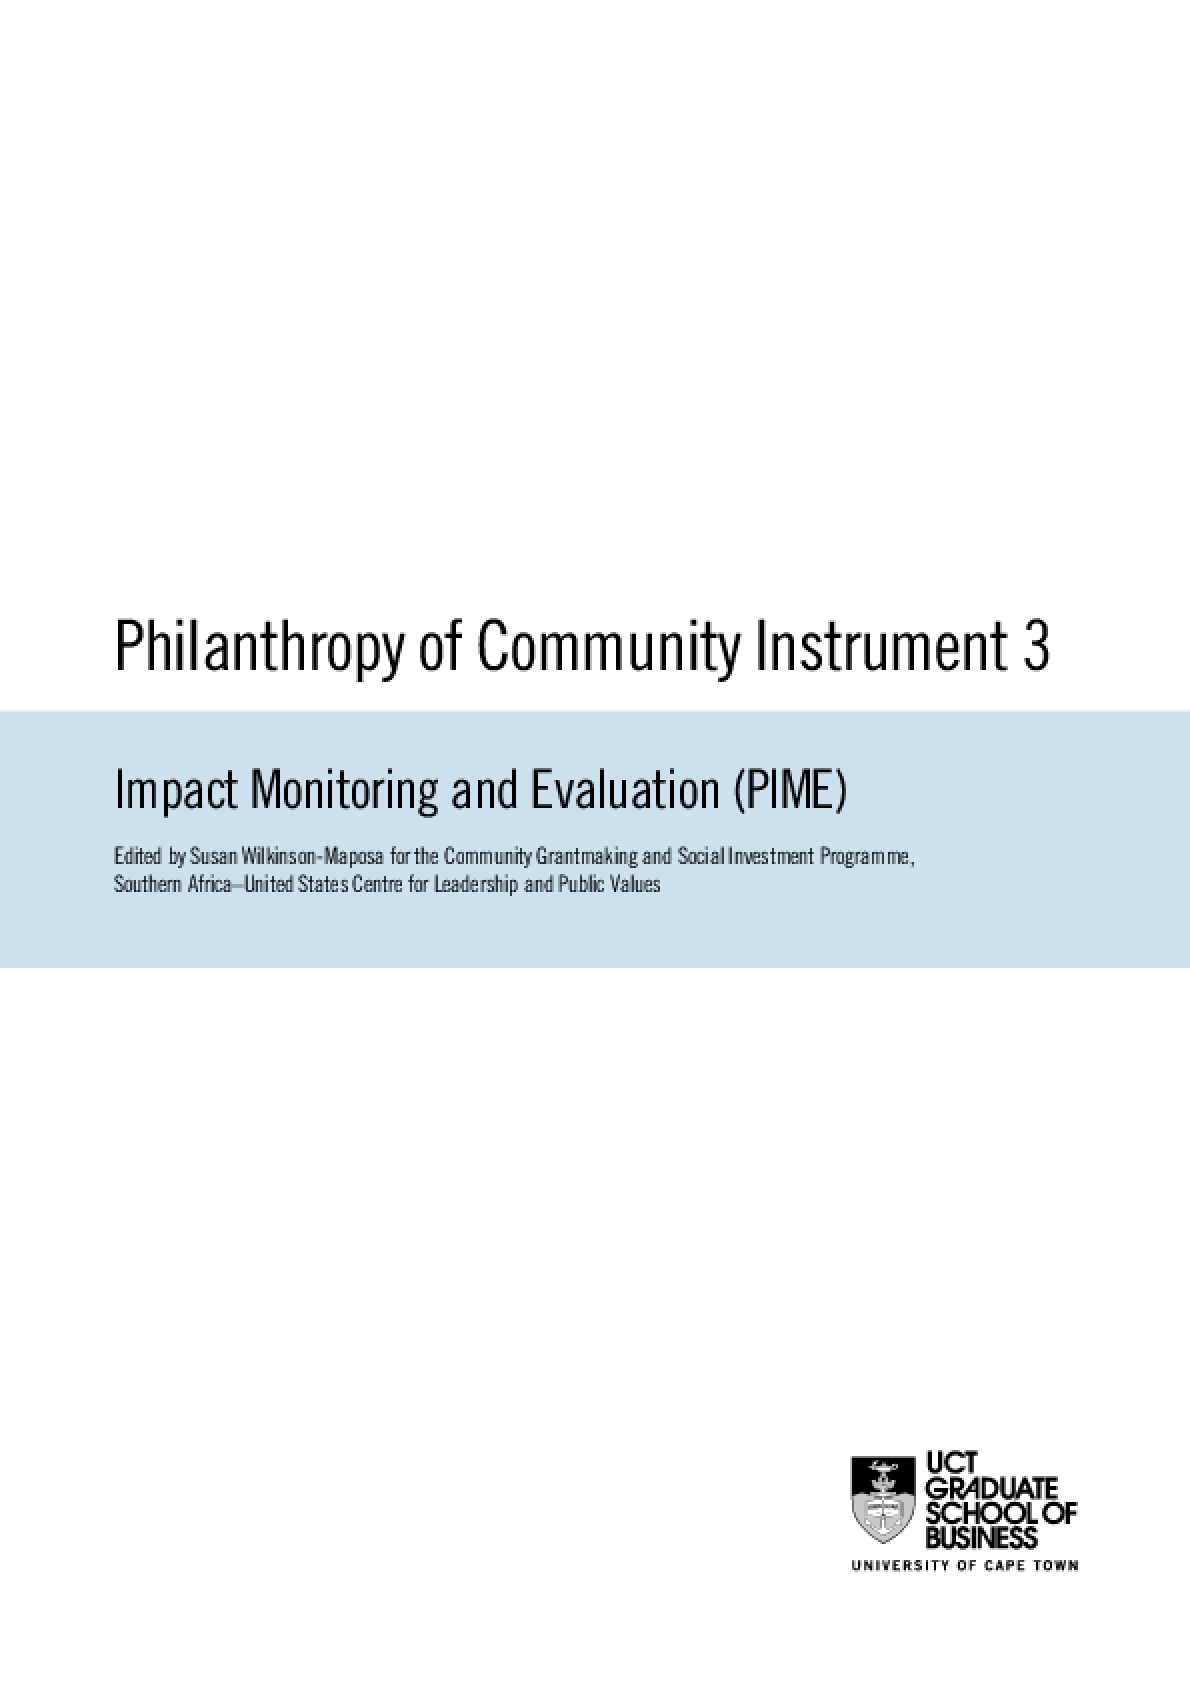 Philanthropy of Community Instrument 3: Impact Monitoring and Evaluation (PIME)